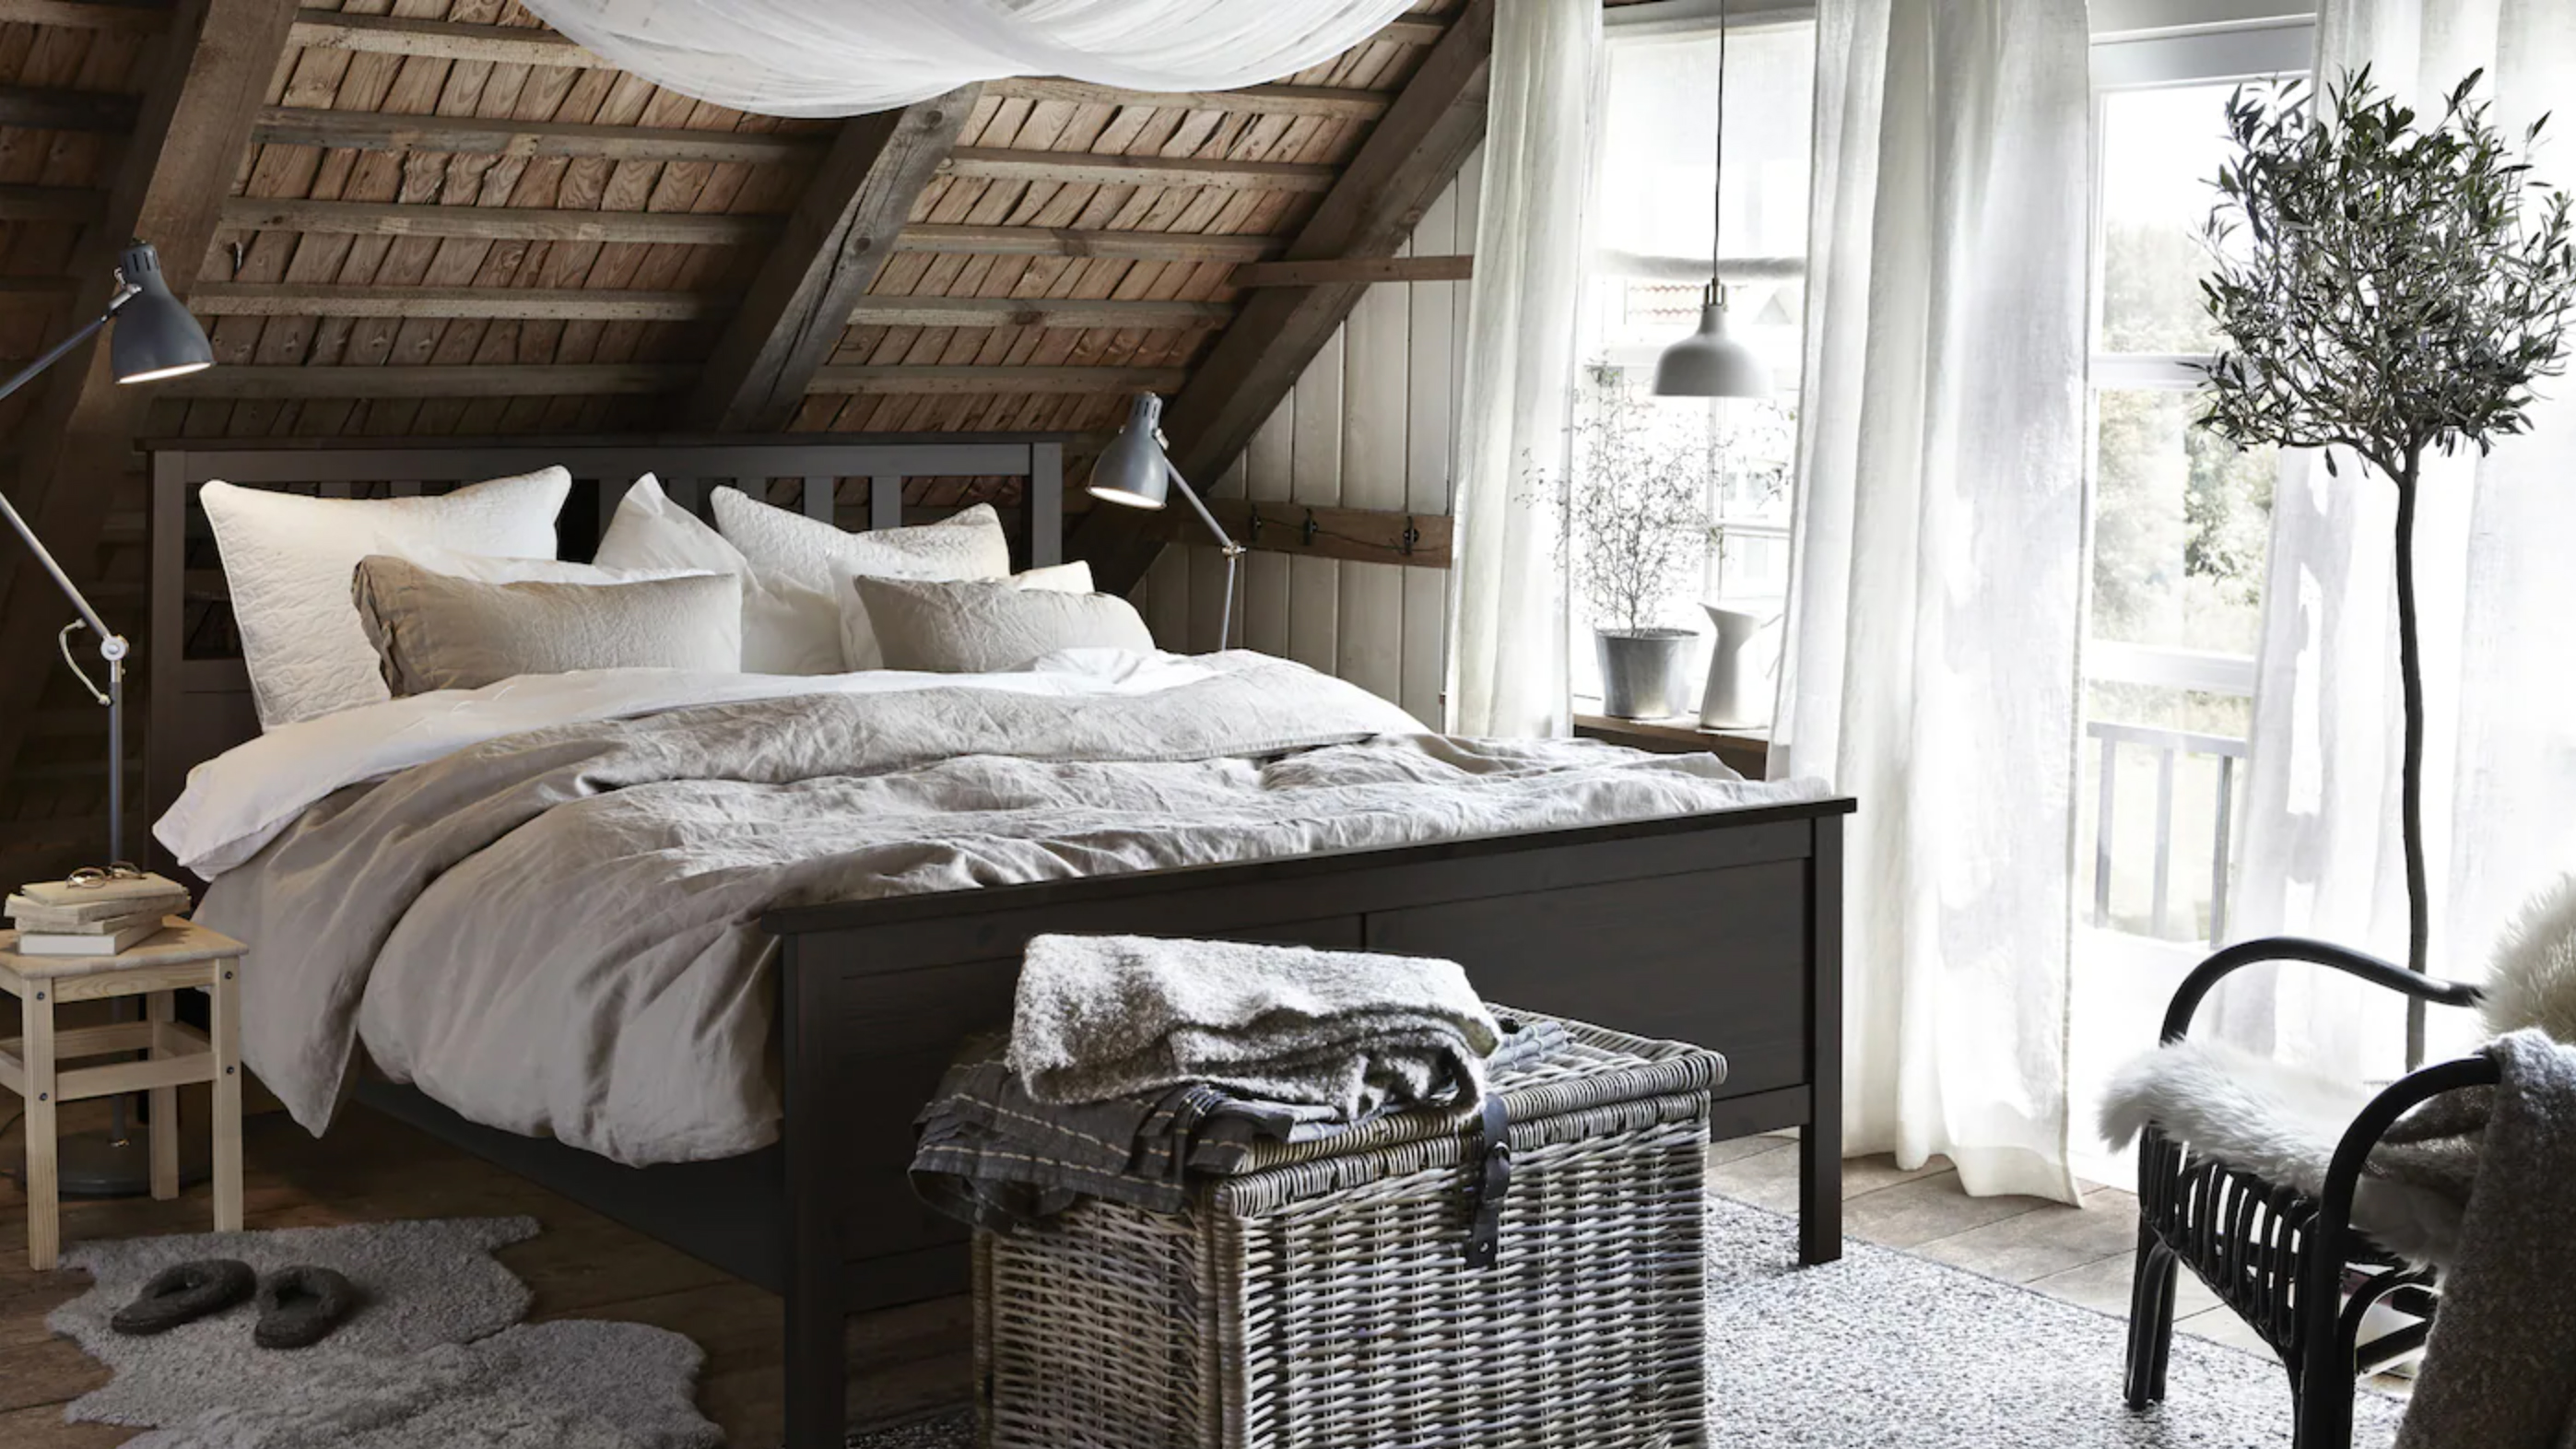 Bedroom Lighting Ideas 14 Ways To Illuminate Your Space Like A Dream Real Homes